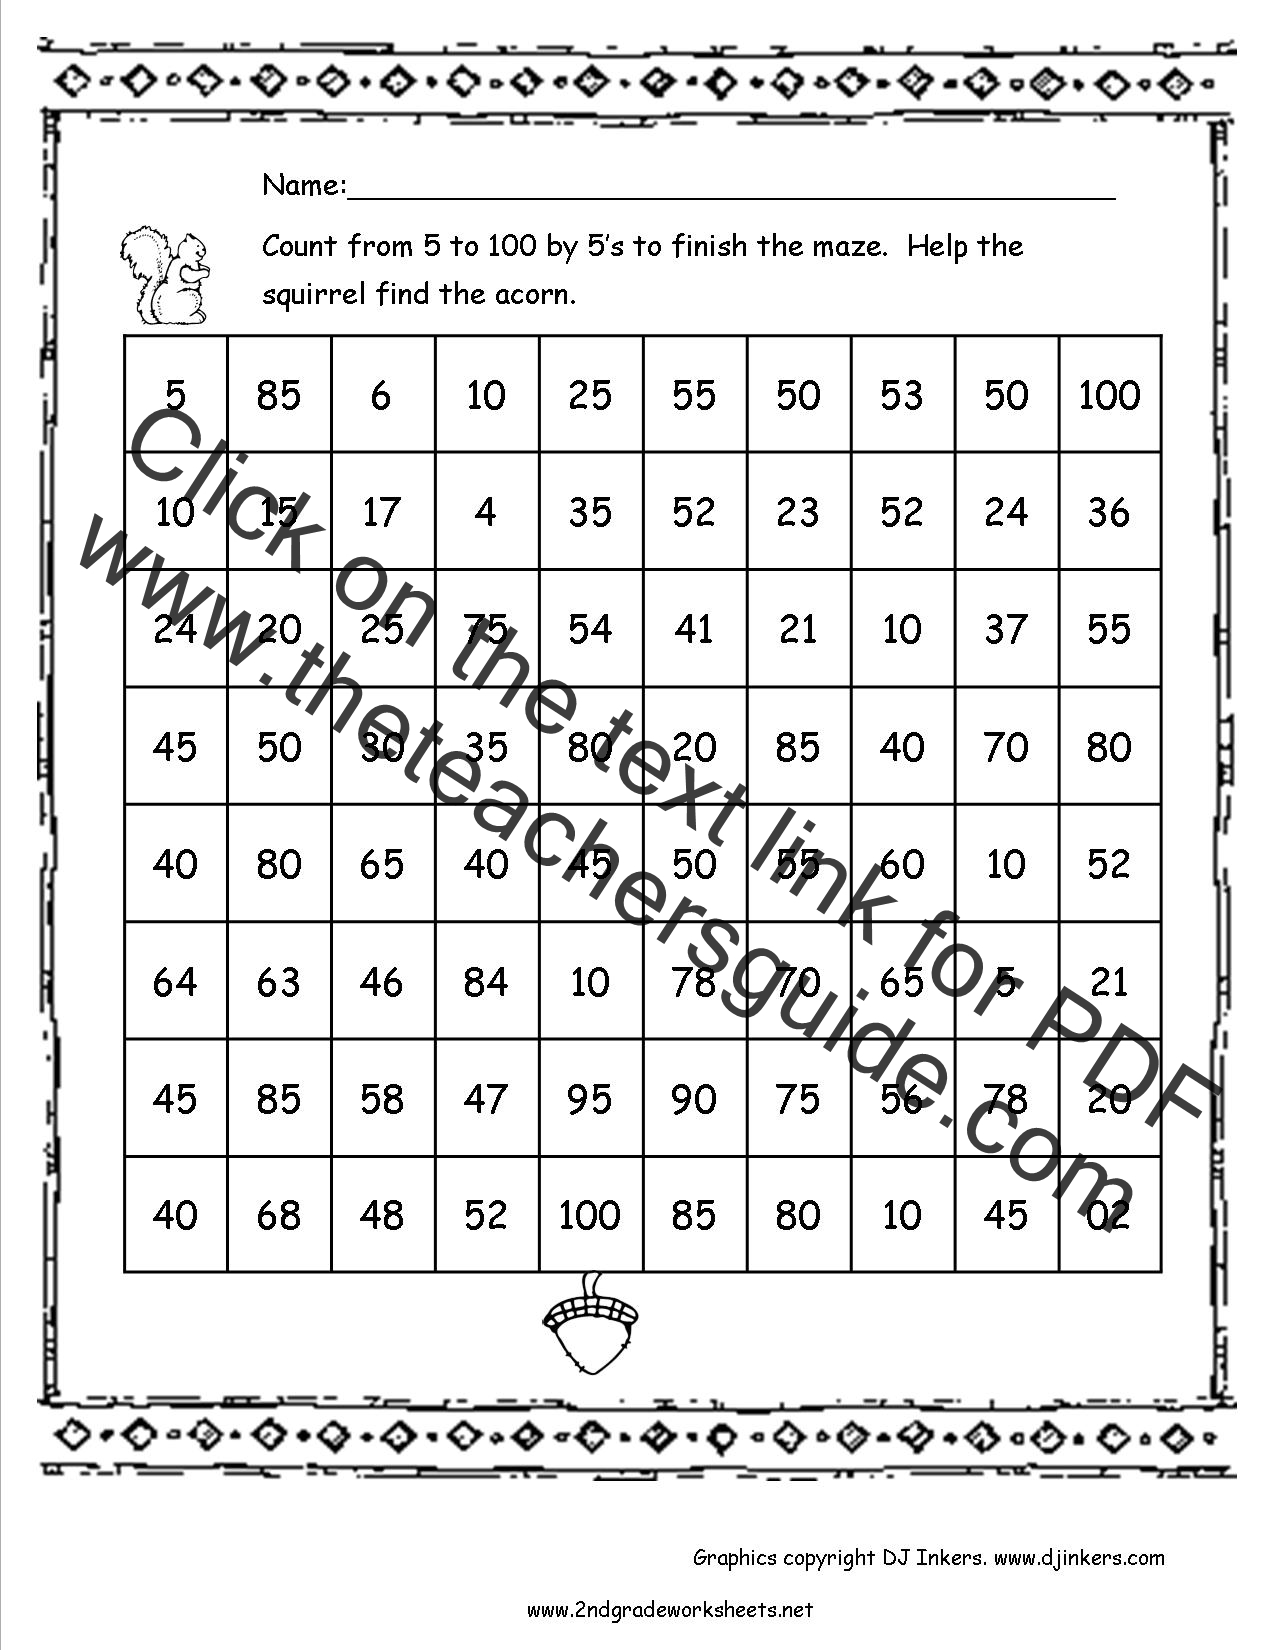 math worksheet : 100th day of school worksheets and printouts : 100th Day Of School Math Worksheets